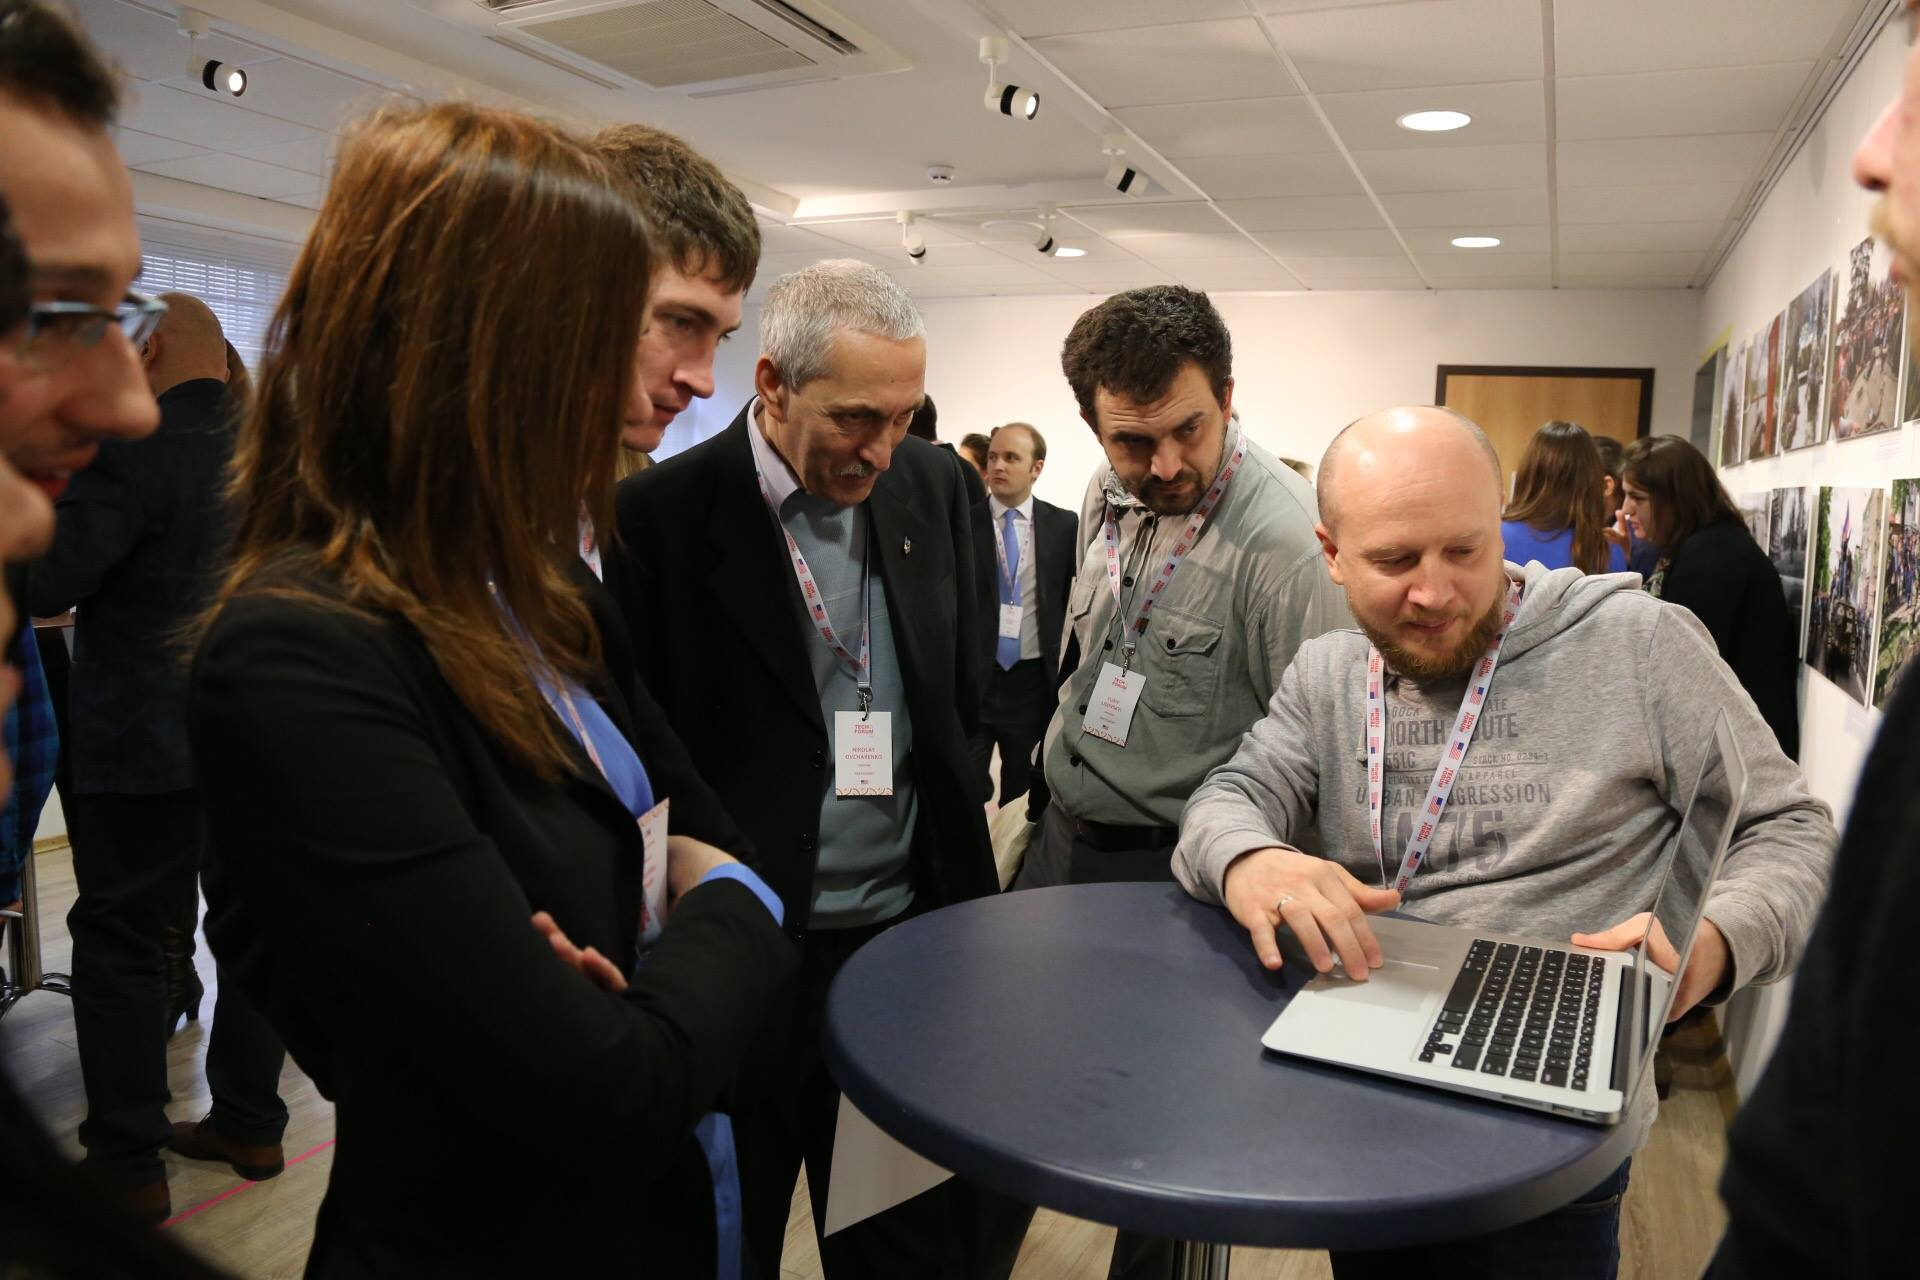 TechForum expert showcases new ideas for using technology for transparency.